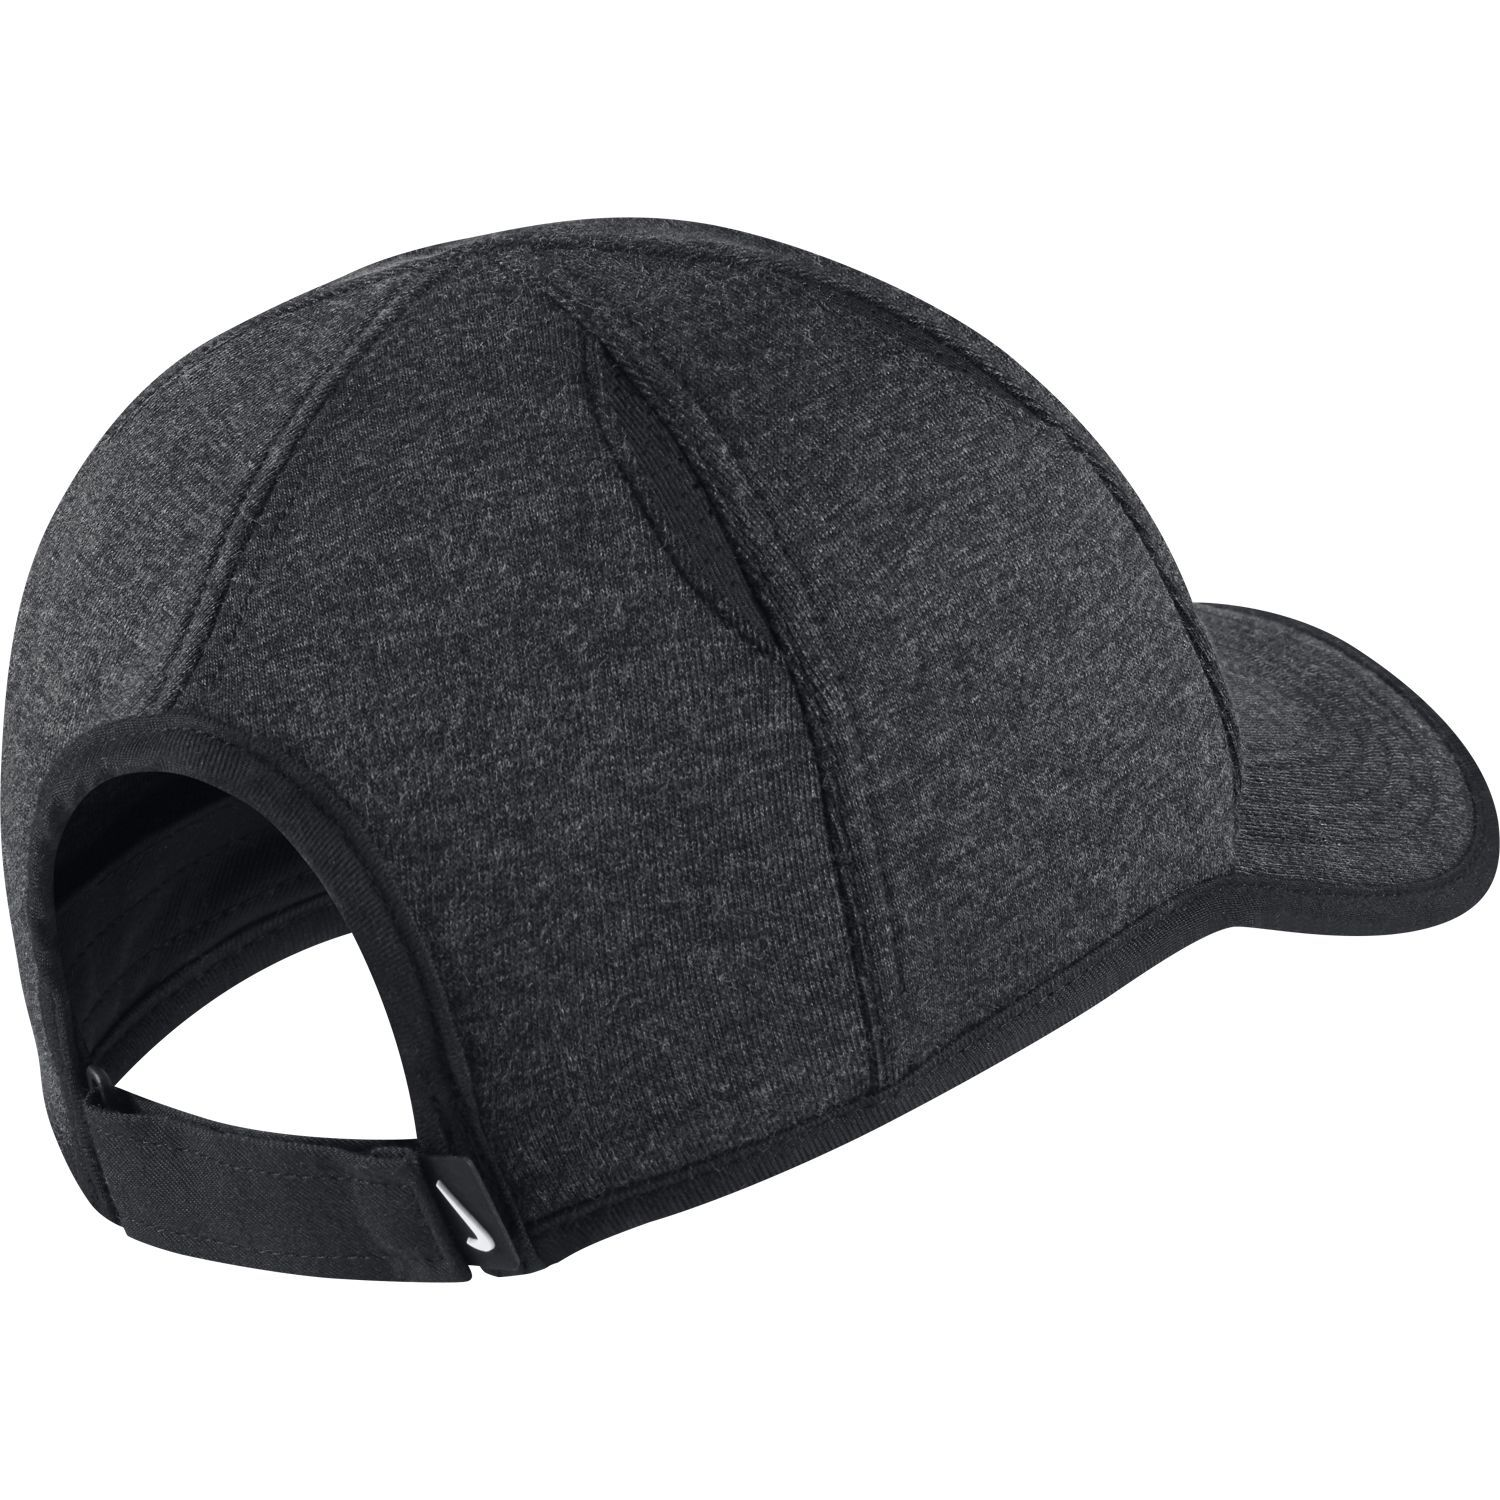 fed2f3e42d6 Nike AeroBill Featherlight Premium Cap Black Heather - Extreme-Tennis